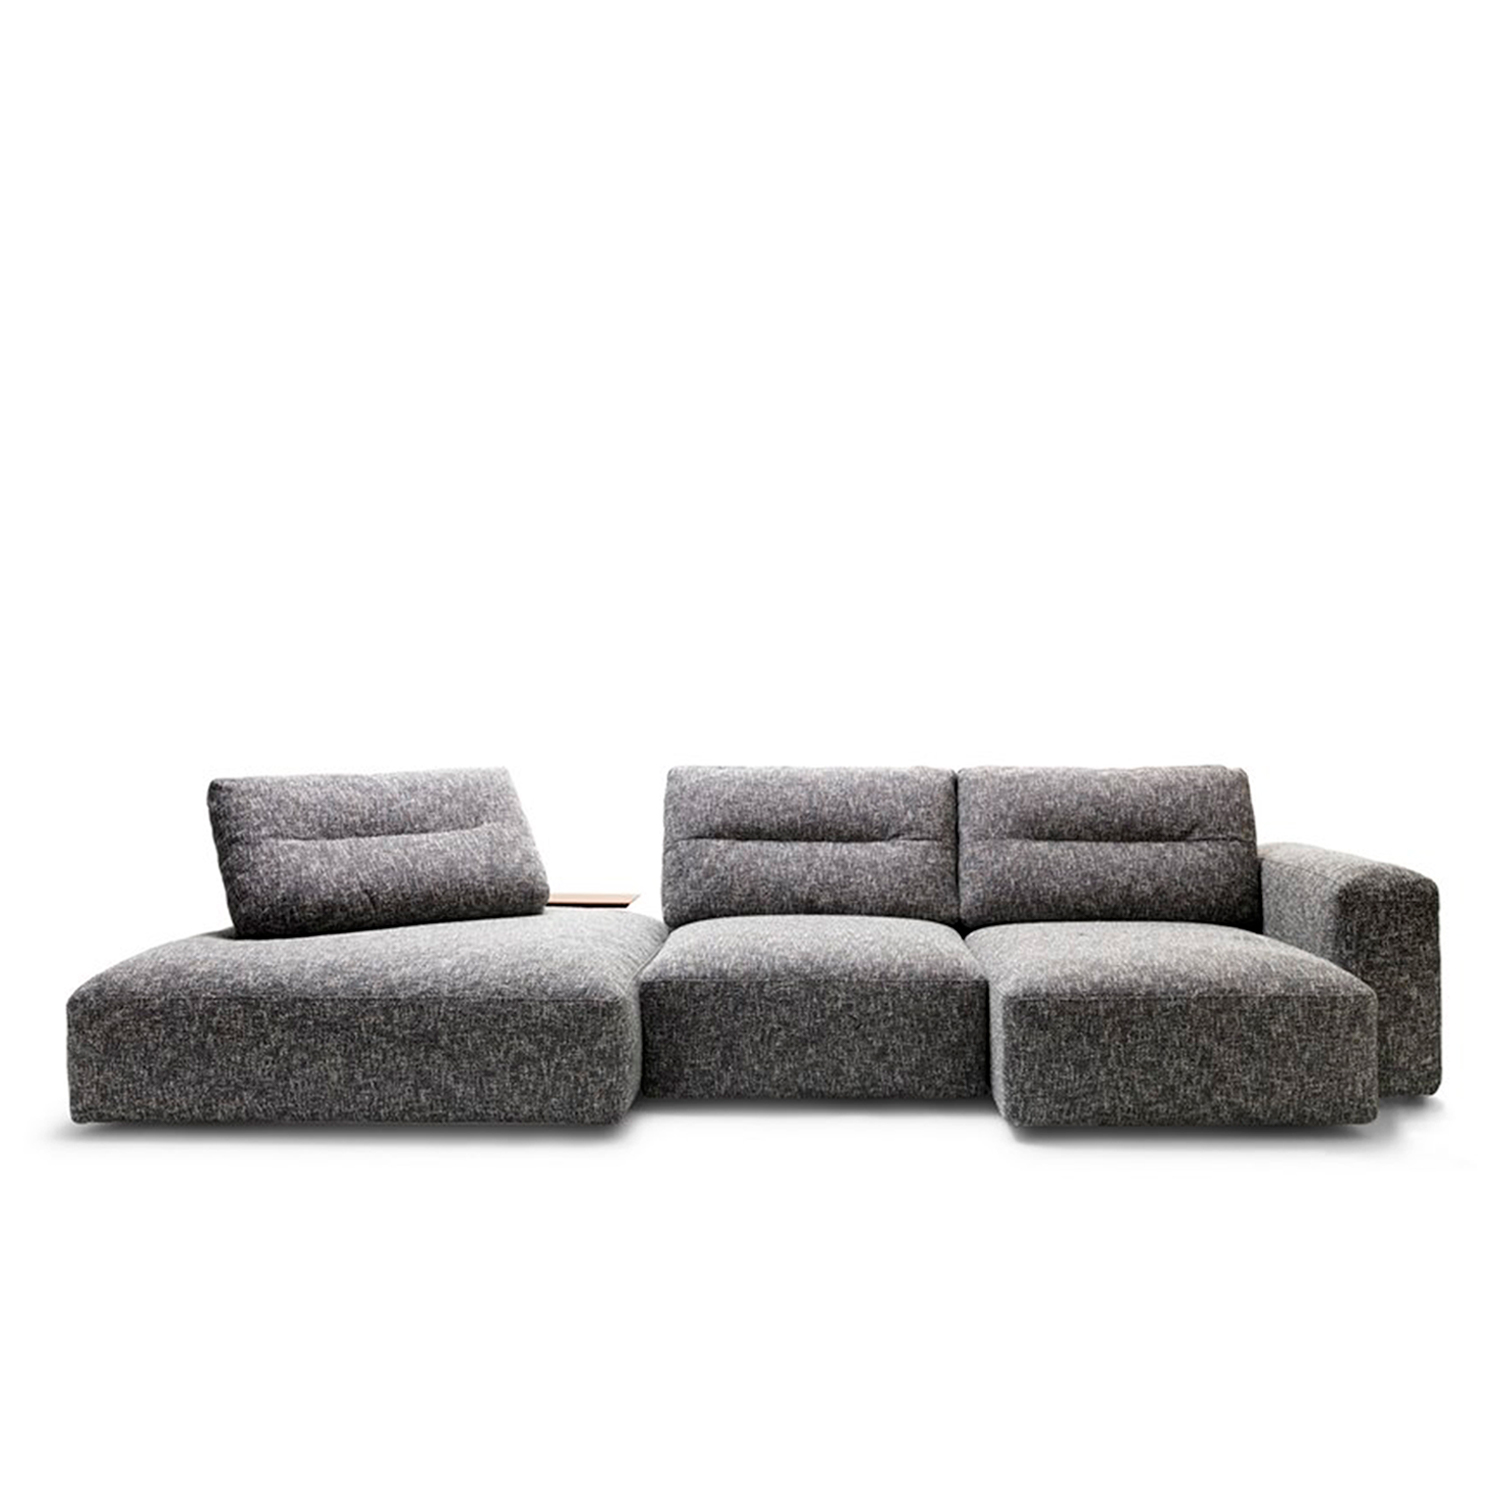 My Taos Modular Sofa - My Taos is the sofa design that best communicates Saba's identity. Its recent redesign is based on the 4 pillars of the company: memory, comfort, design and poetry. My Taos stays true to its original design by maintaining the element of fluidity in the movement of the pouf structures. Improved comfort has redefined the heights of the back structures and improved the ergonomics using the latest generation of materials. This new design has also altered the fold-out side tables and new cylindrical support cushions. The element of poetry in the updated design has rounded the overall form, softening all edges and lines. My Taos sofa epitomizes how an excellent design stands the test of time.  This is a modular sofa so it is available in various sizes and combinations. Please enquire for more information and prices.   Materials Structure in wood and steel padded with polyurethane and memory foam. Upper mattress in goose down covered with 100% cotton fabric. Feet in wood with non-sliding plugs. The seats of central and chaise longue elements are provided with feet in wood with on-sliding plugs ans wheels. The seat cushions are made with polyurethane and memory foam, upper mattress in goose down covered with 100% cotton fabric. The black cushions are padded with Mollapiuma (50% goose down and 50% dacron DuPont fiber) covered with 100% cotton fabric. The roll cushions have got polyurethane foam core with black painted metal insert and polyester fiber coating. | Matter of Stuff